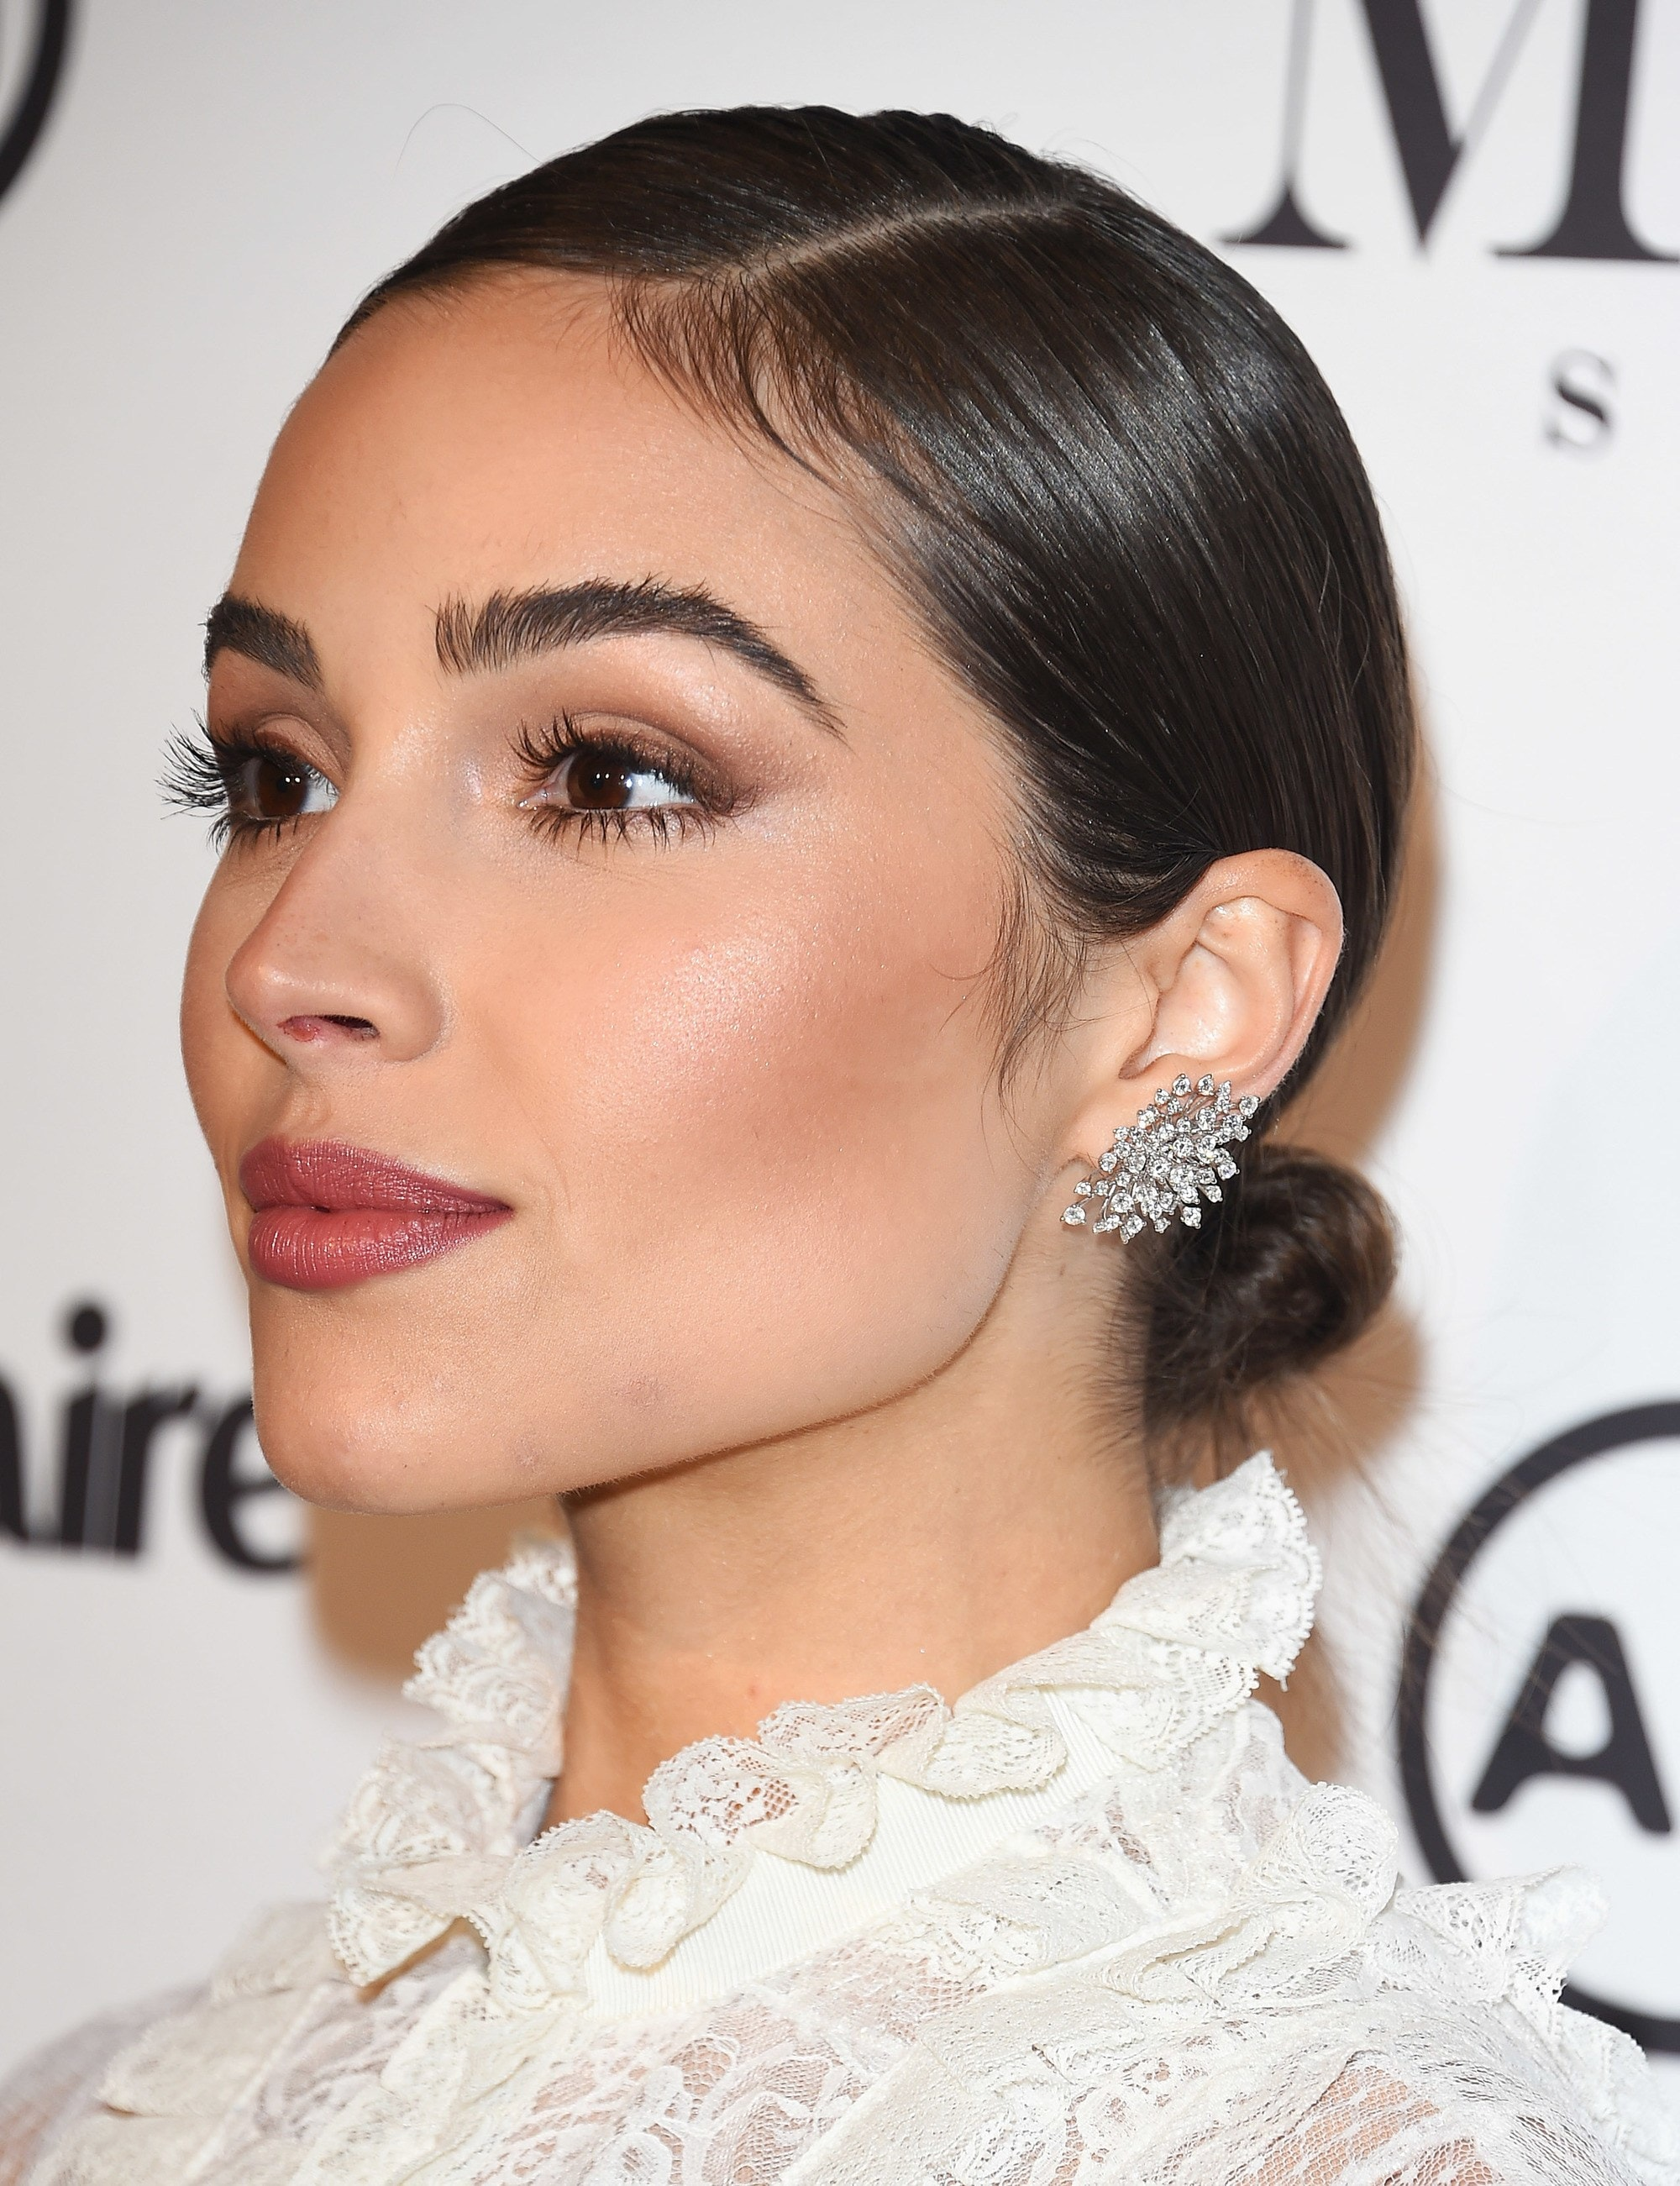 12 Formal Hairstyles For Short Hair To Rock This Party Season